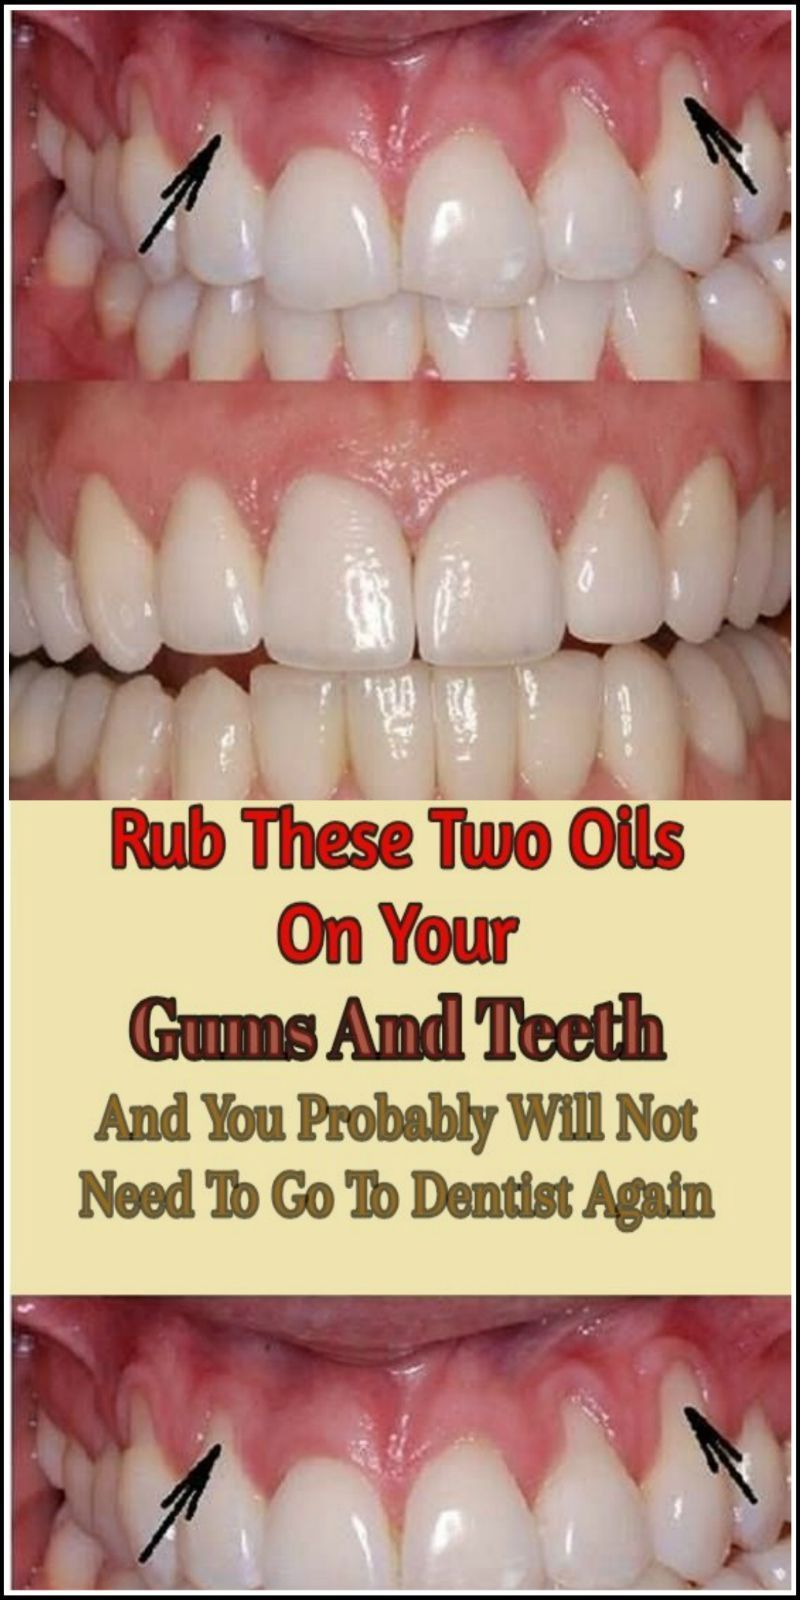 Rub These Two Oils On Your Gums And Teeth fitness60634